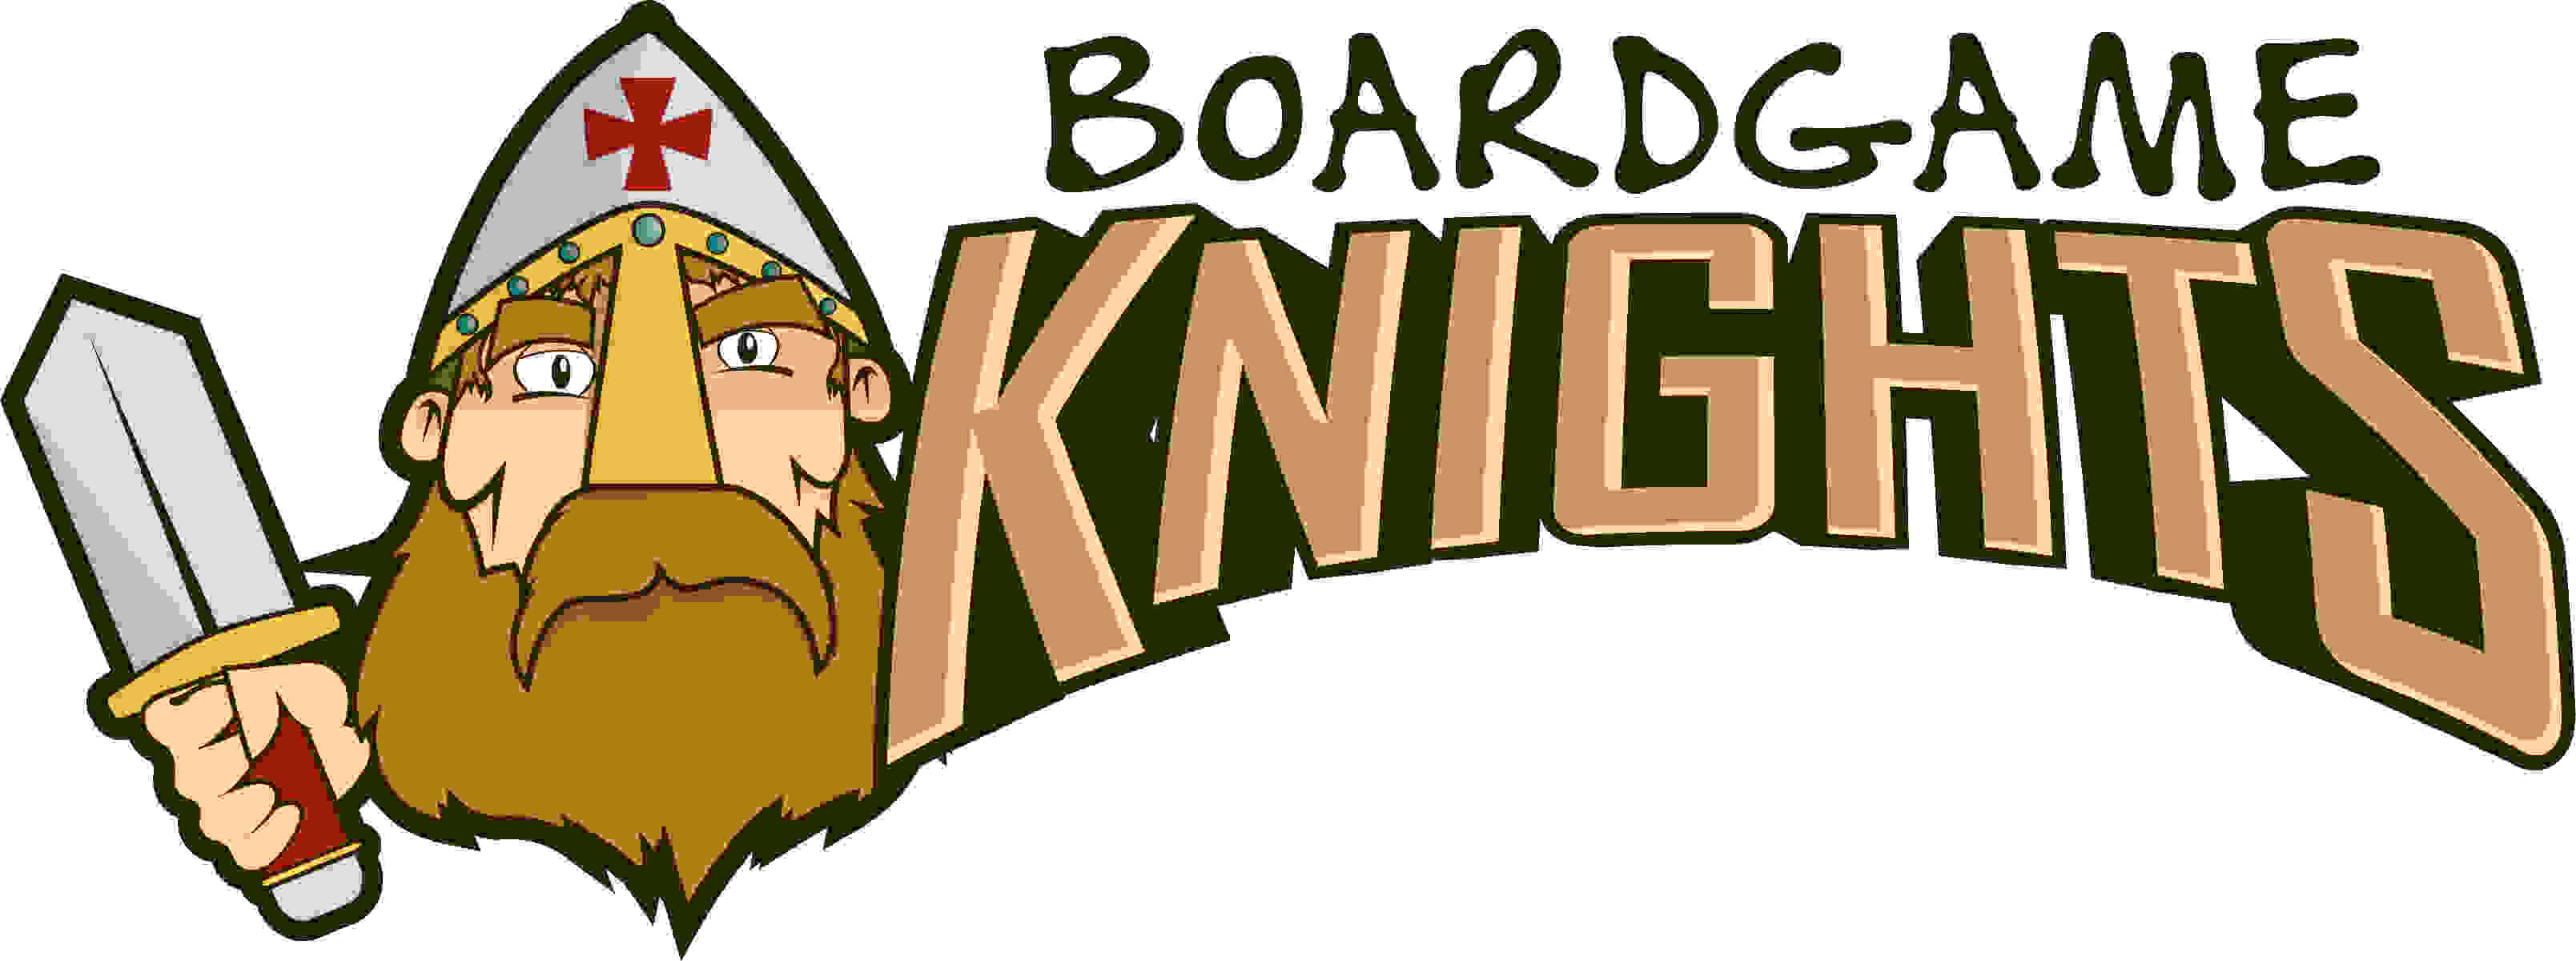 boardgame-knights-logo